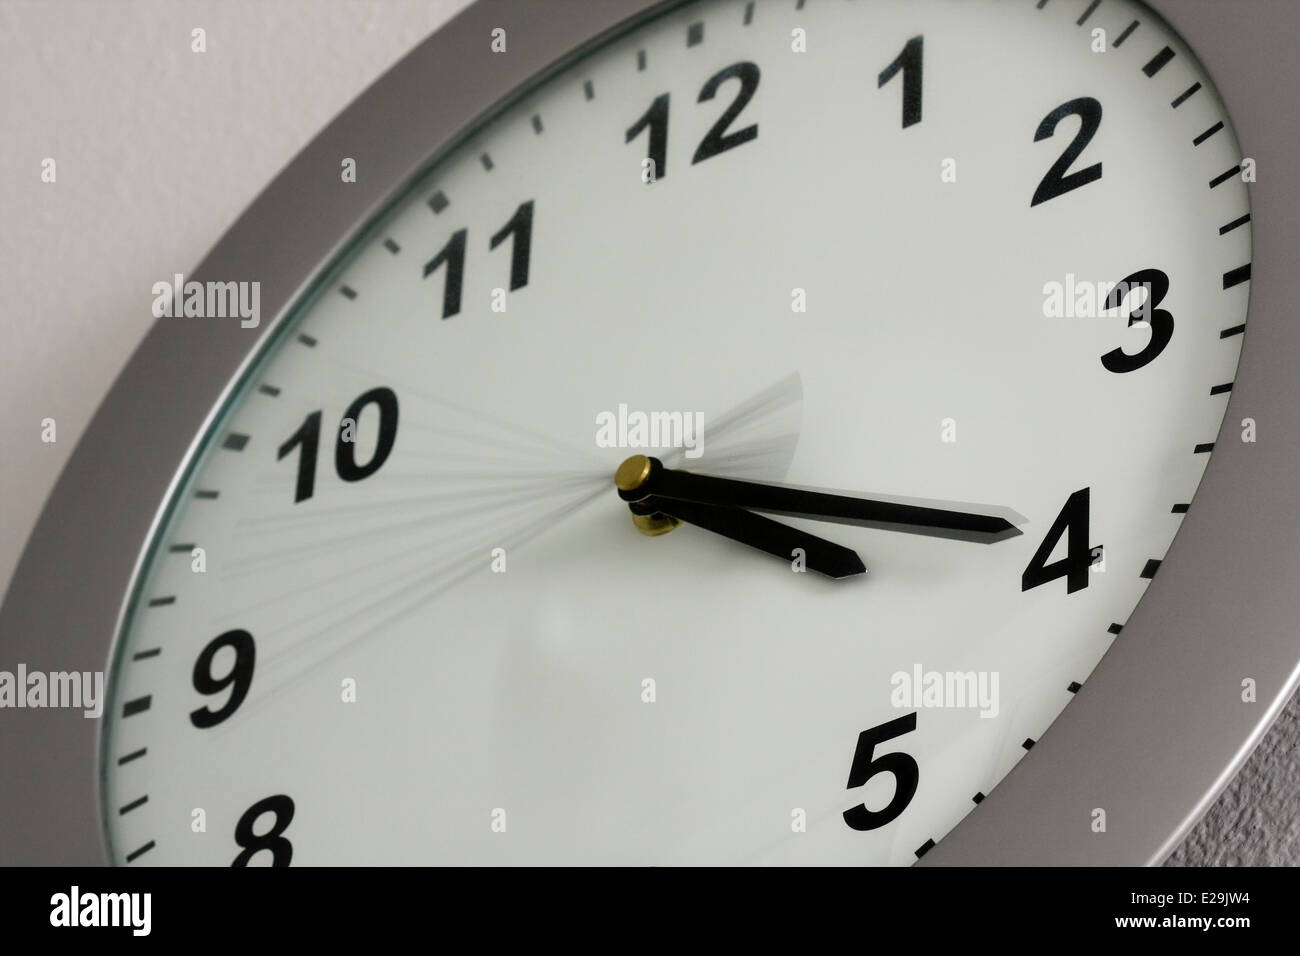 Grey Wall Clock showing the time of 4:20 - Stock Image